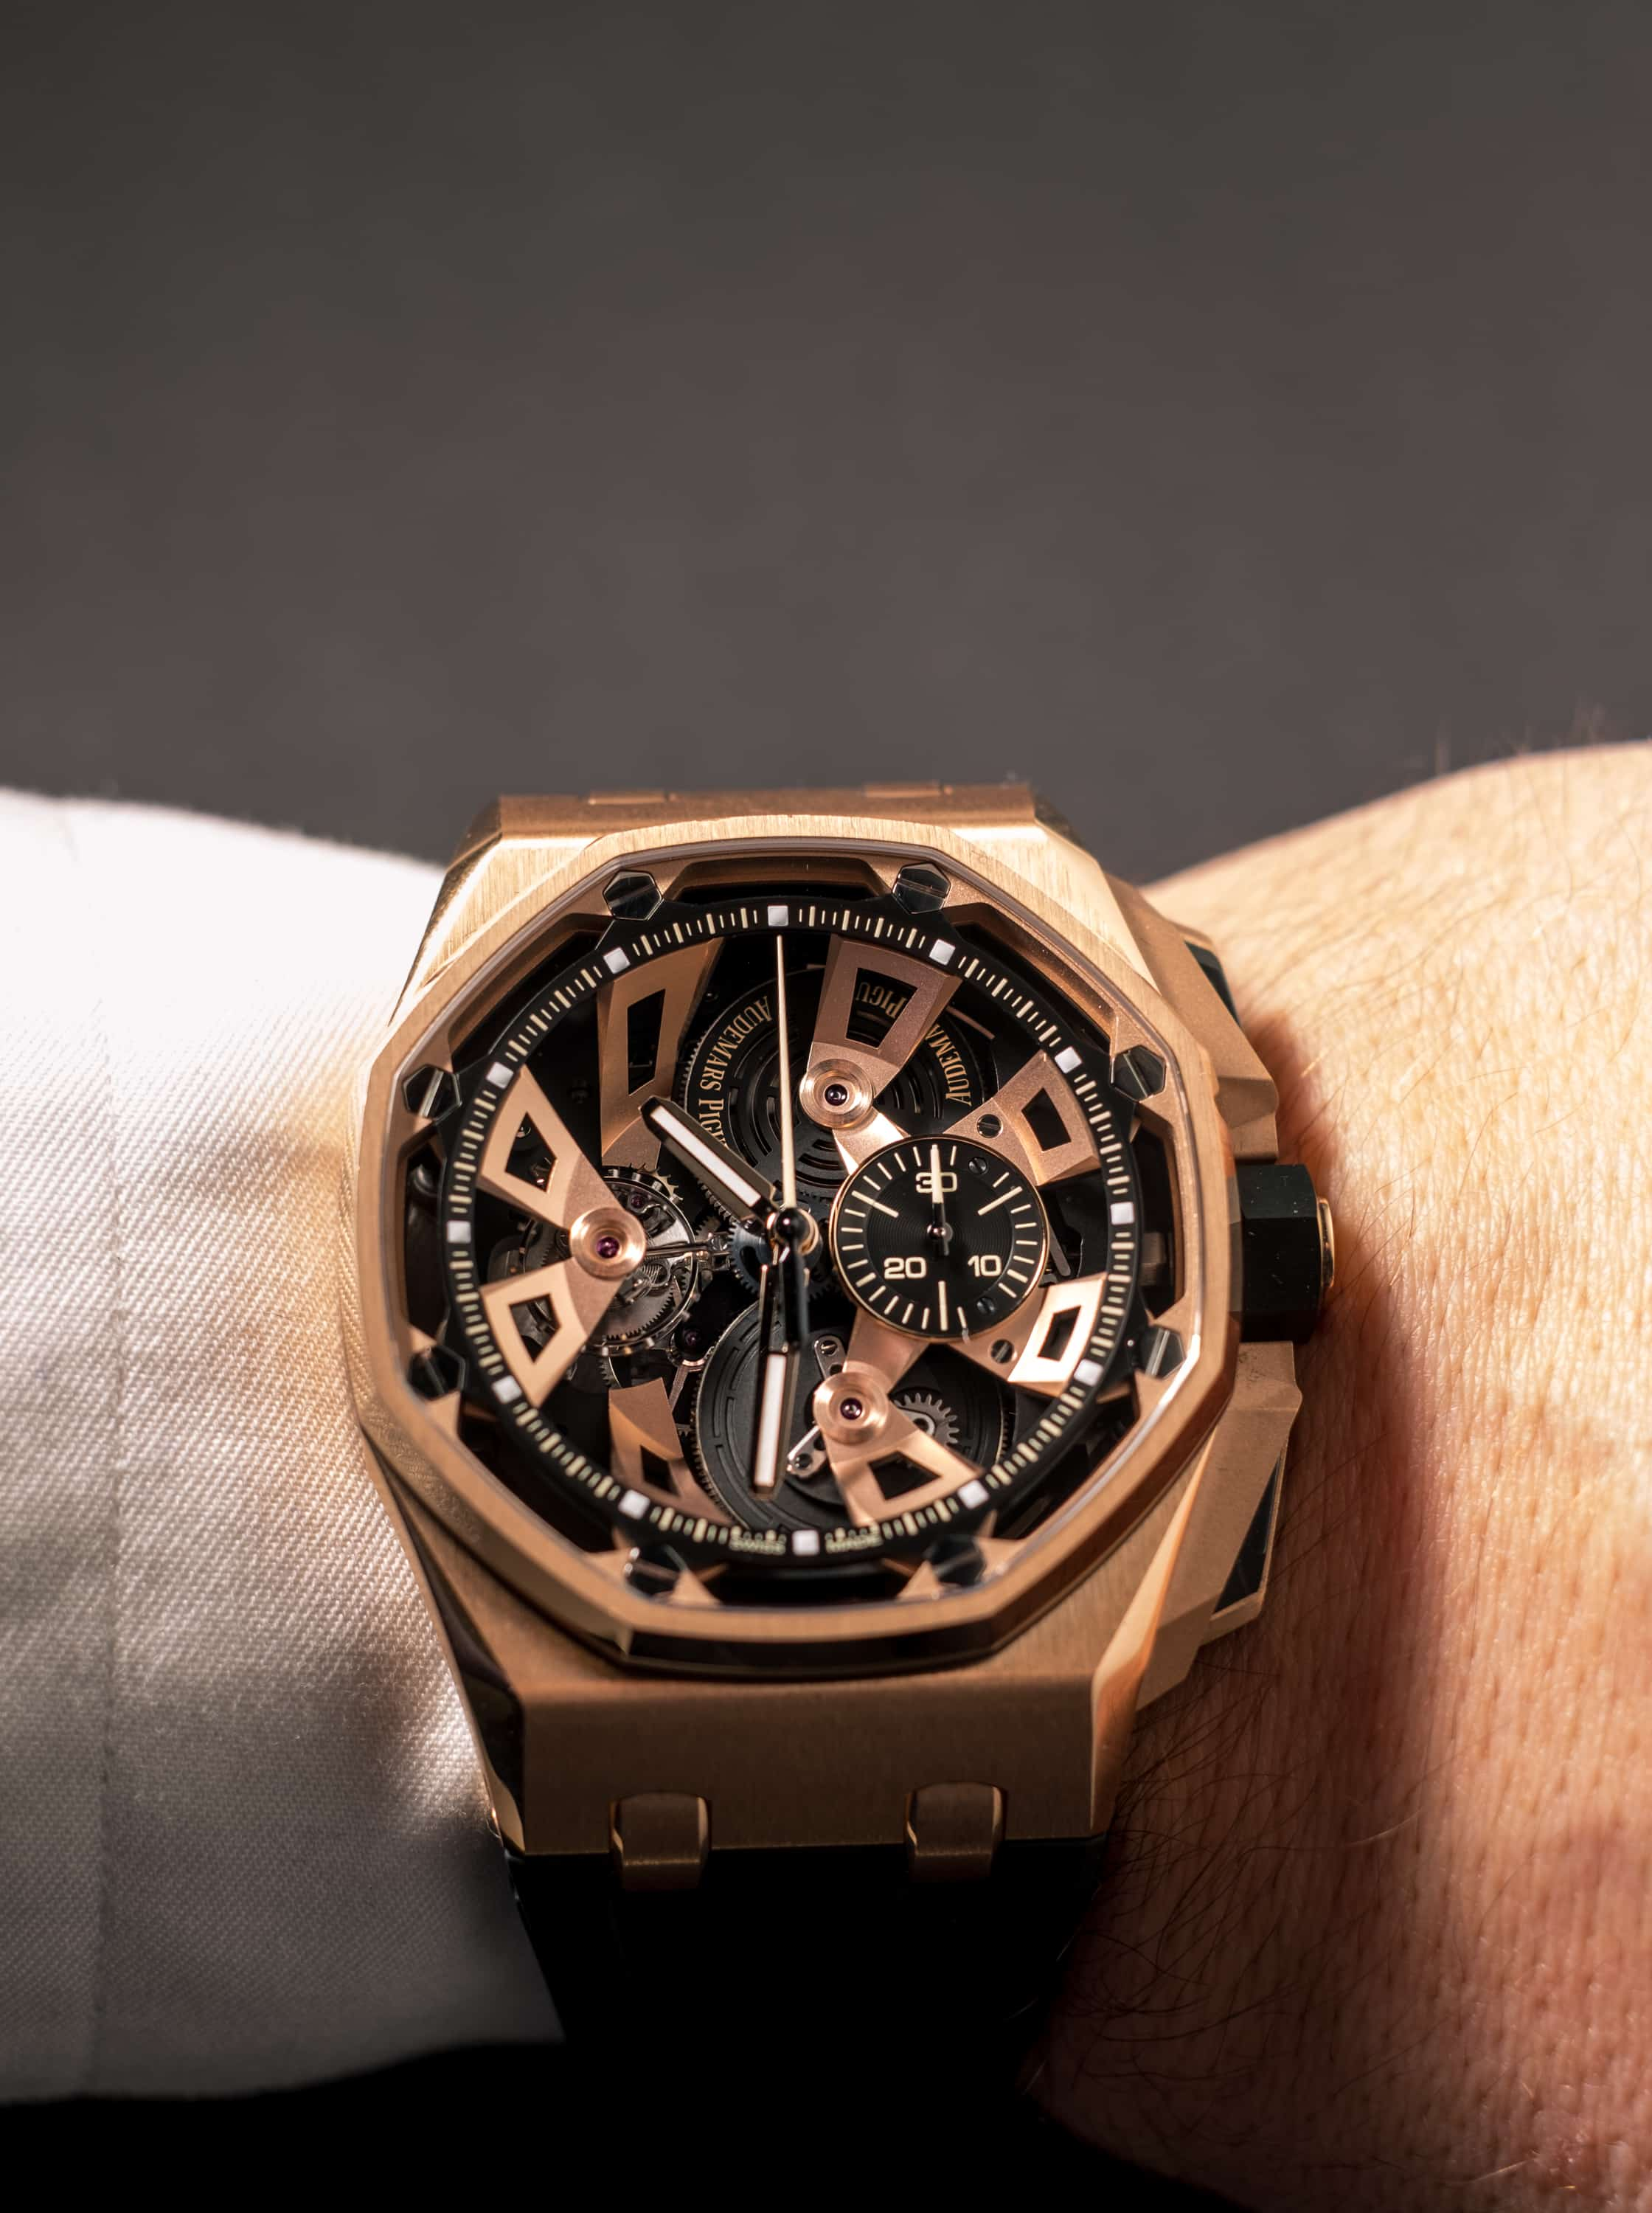 Audemars Piguet SIHH 2018 Royal Oak Offshore Tourbillon Chronograph